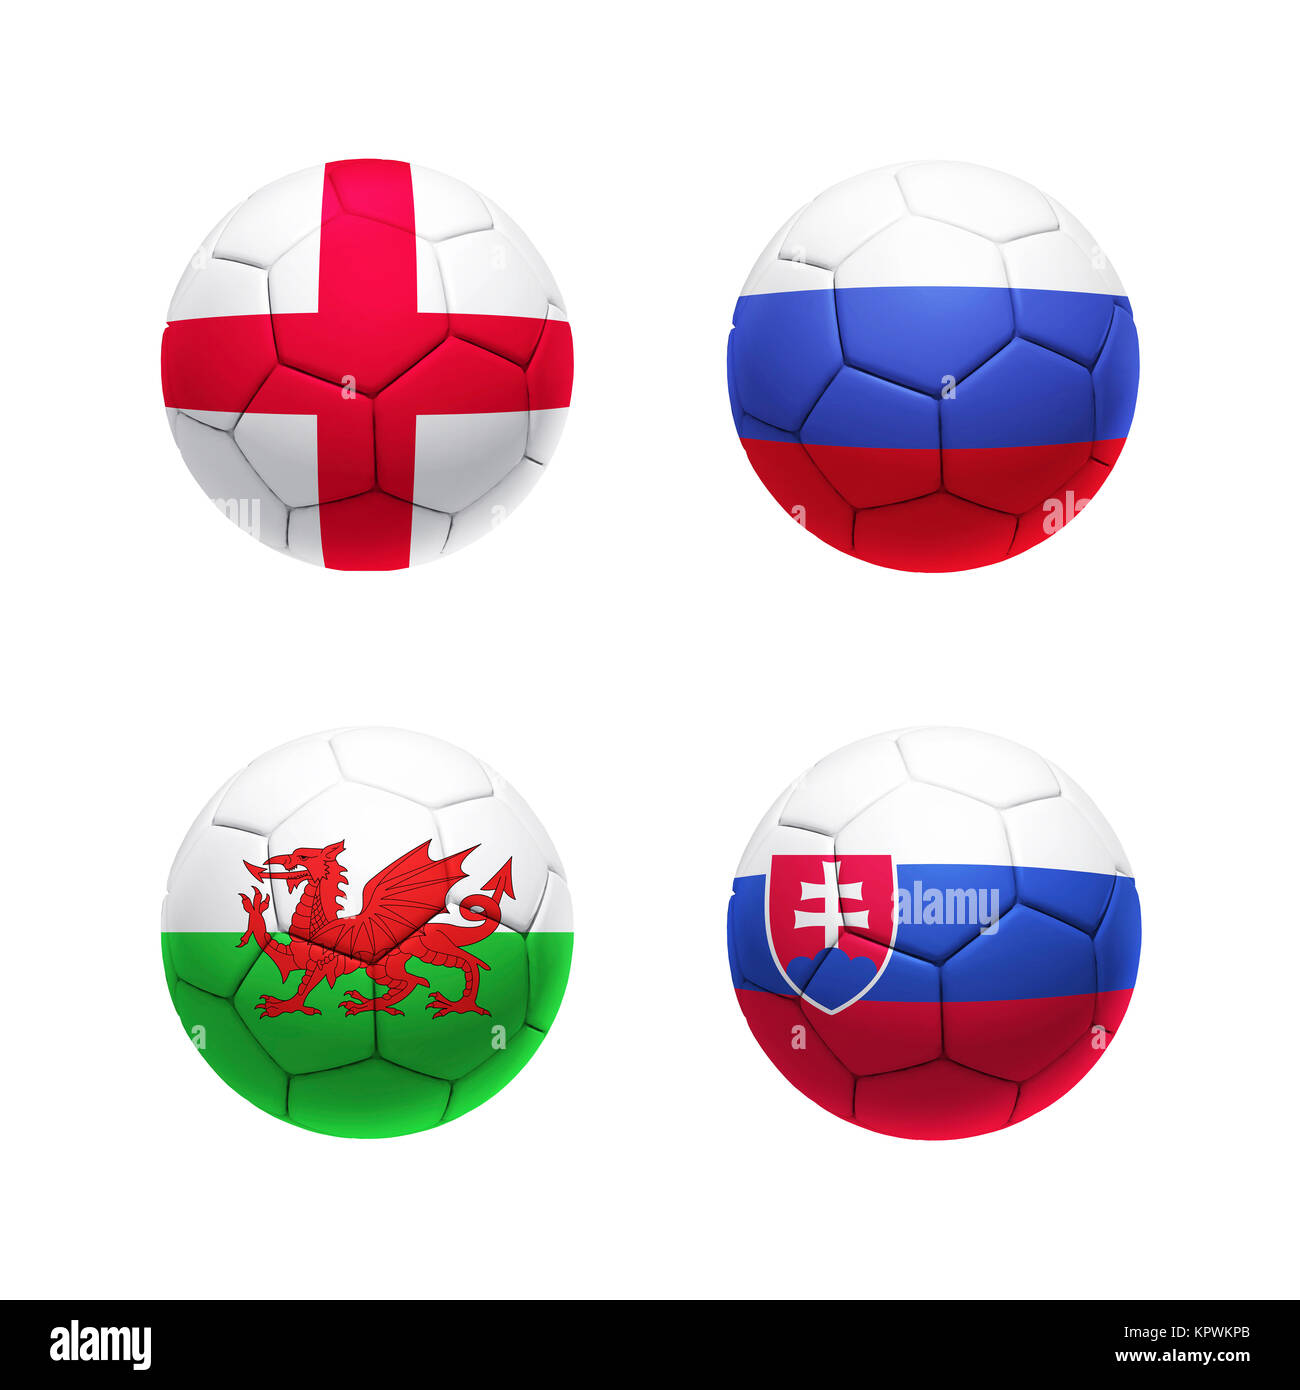 3D soccer ball with group B teams flags - Stock Image